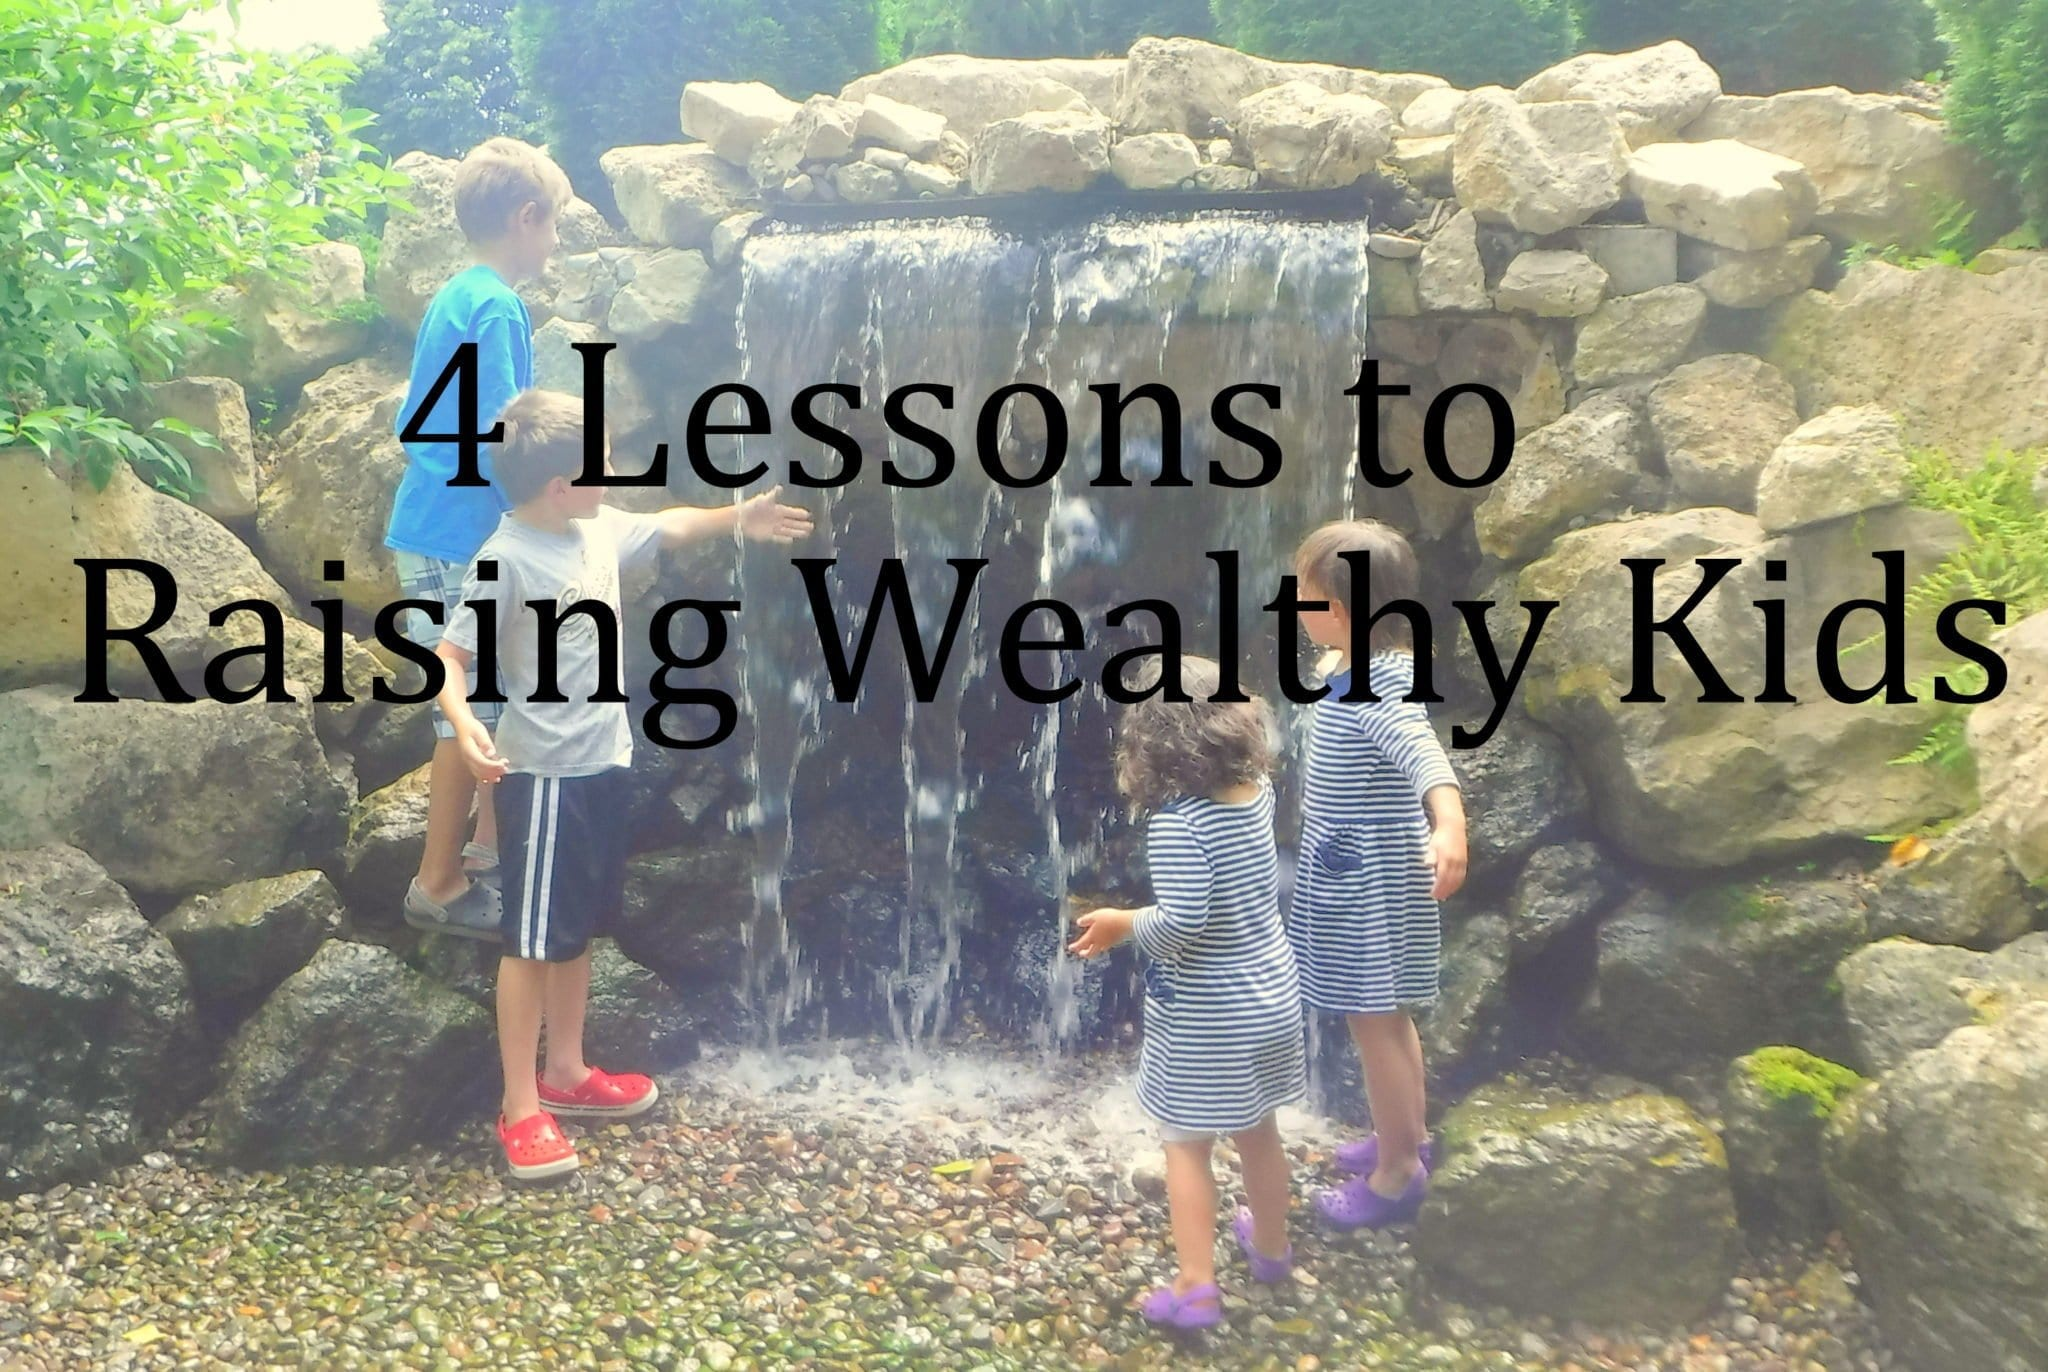 4 Lessons to Raising Wealthy Kids